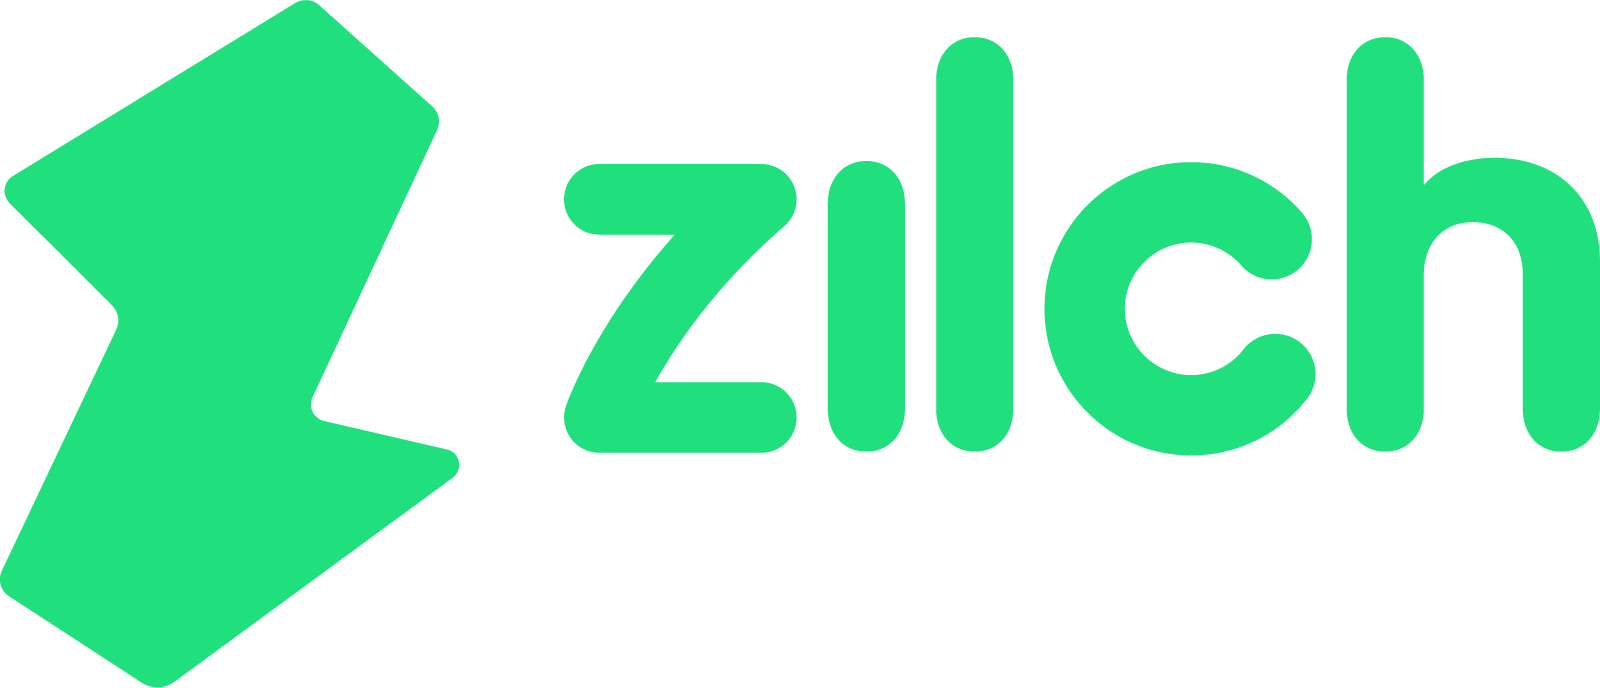 Zilch Technology Limited Help Centre home page